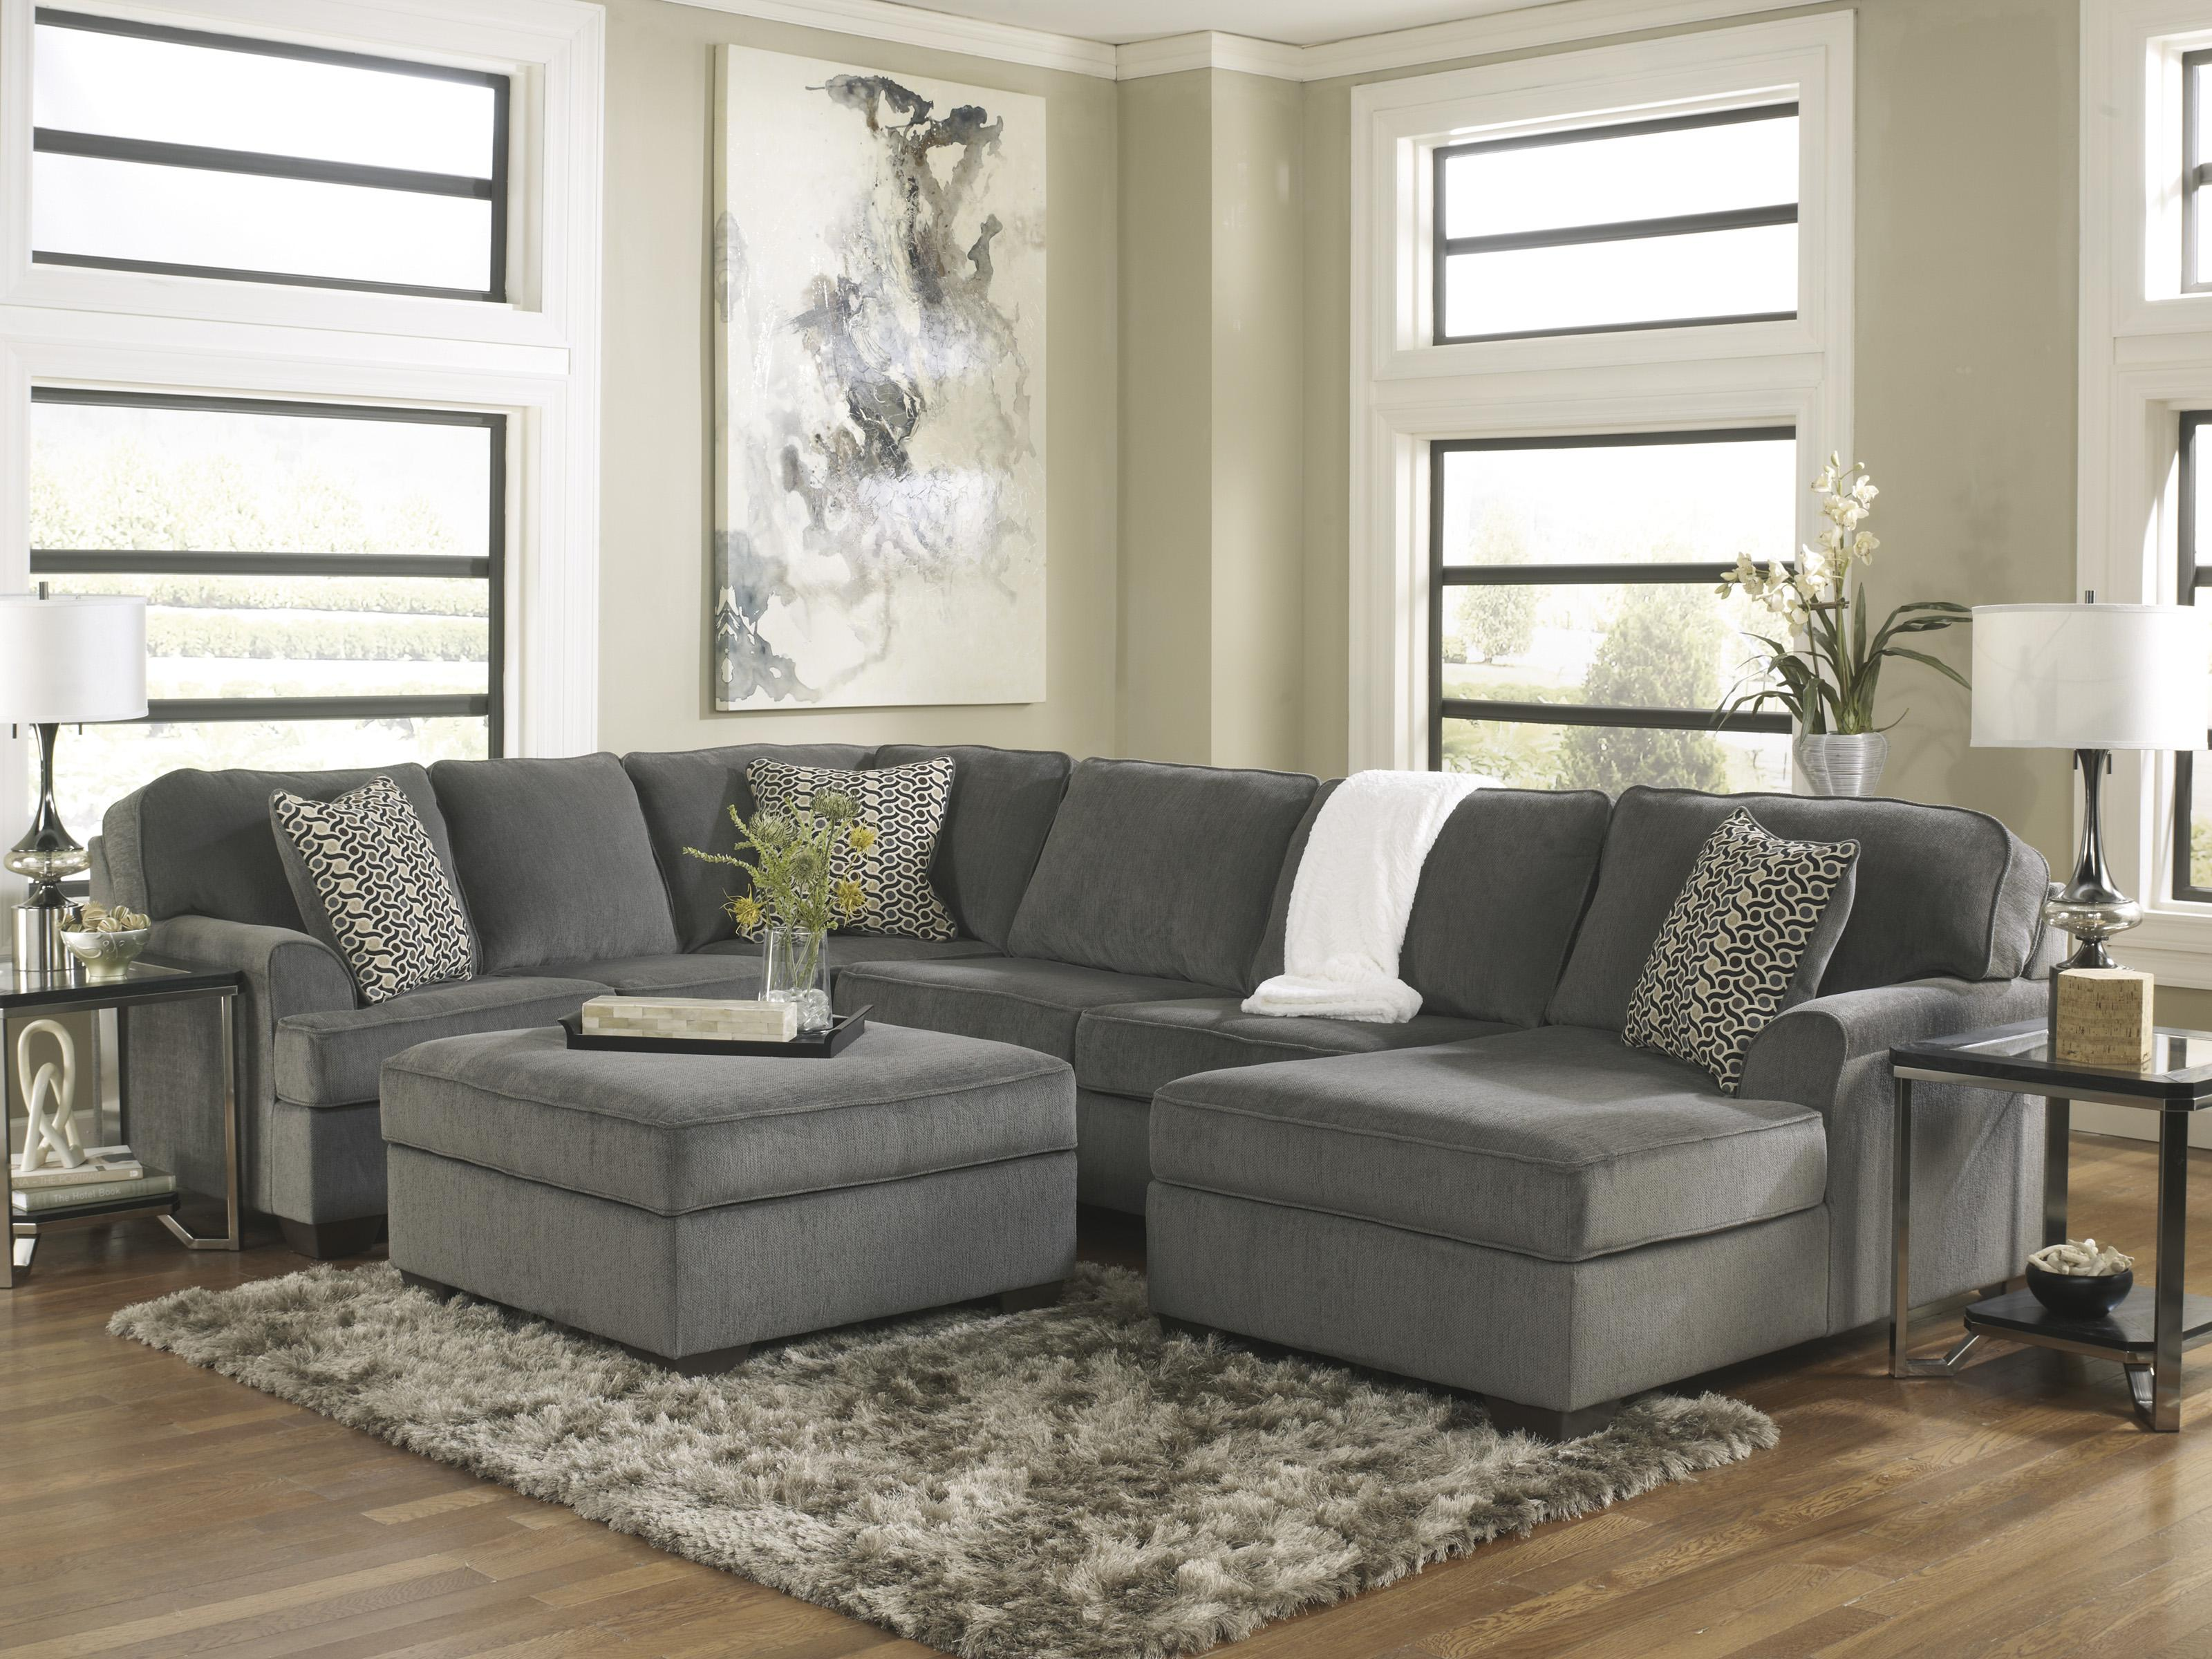 Ashley Furniture Loric - Smoke Contemporary 3-Piece Sectional with Right Chaise - Godby Home Furnishings - Sofa Sectional Noblesville Carmel Avon ... : ashley furniture sectionals - Sectionals, Sofas & Couches